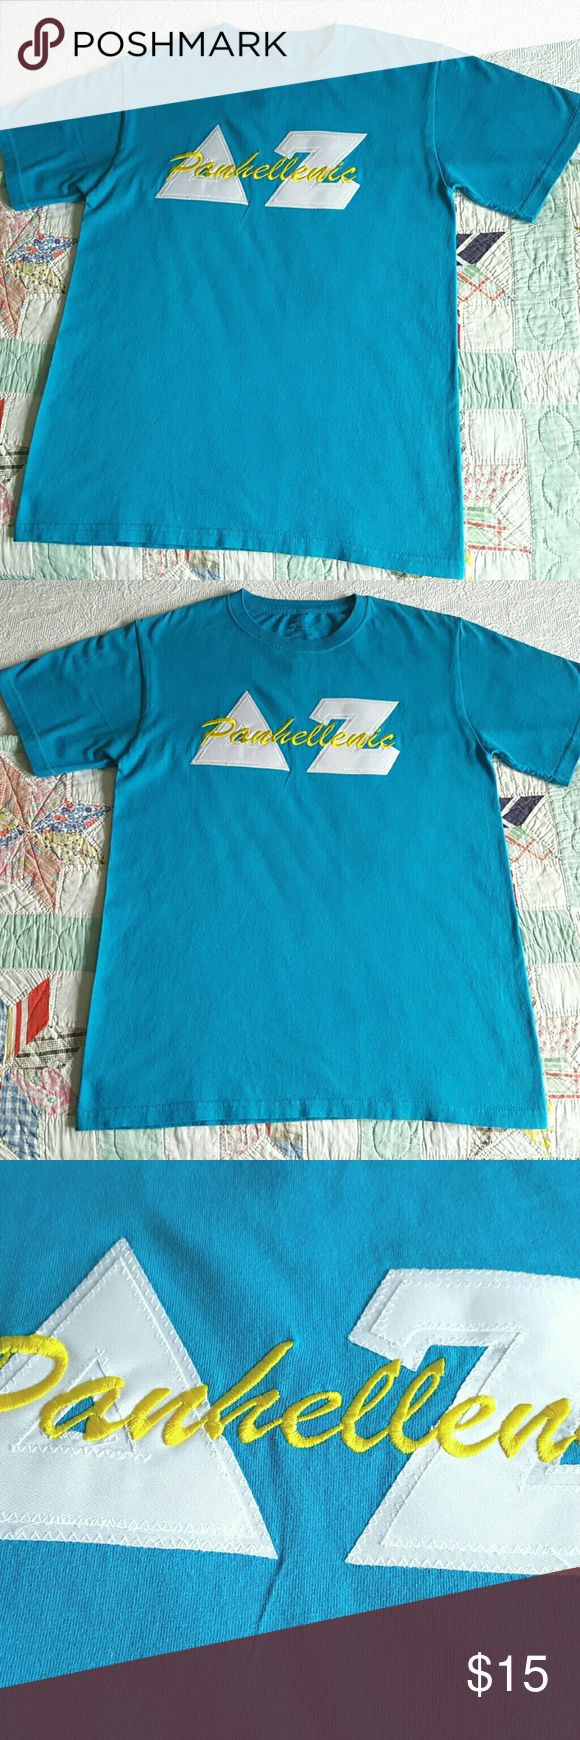 """Delta Zeta Sorority Letter T-Shirt Blue Size Small Practically brand new (worn once!) Bright blue Delta Zeta Sorority Letter T-Shirt.  Greek letters are white on white background with embroidered """"Panhellinic"""" across the front.   Letters meet DZ sorority t-shirt standards.   Tee by C Port and Company, 100% cotton. Round neck, short sleeve.  Super condition...no evidence of wear, no holes, stains or picks.  Freshly laundered and pressed.  Ready to wear! C.P. Company Tops Tees - Short Sleeve"""